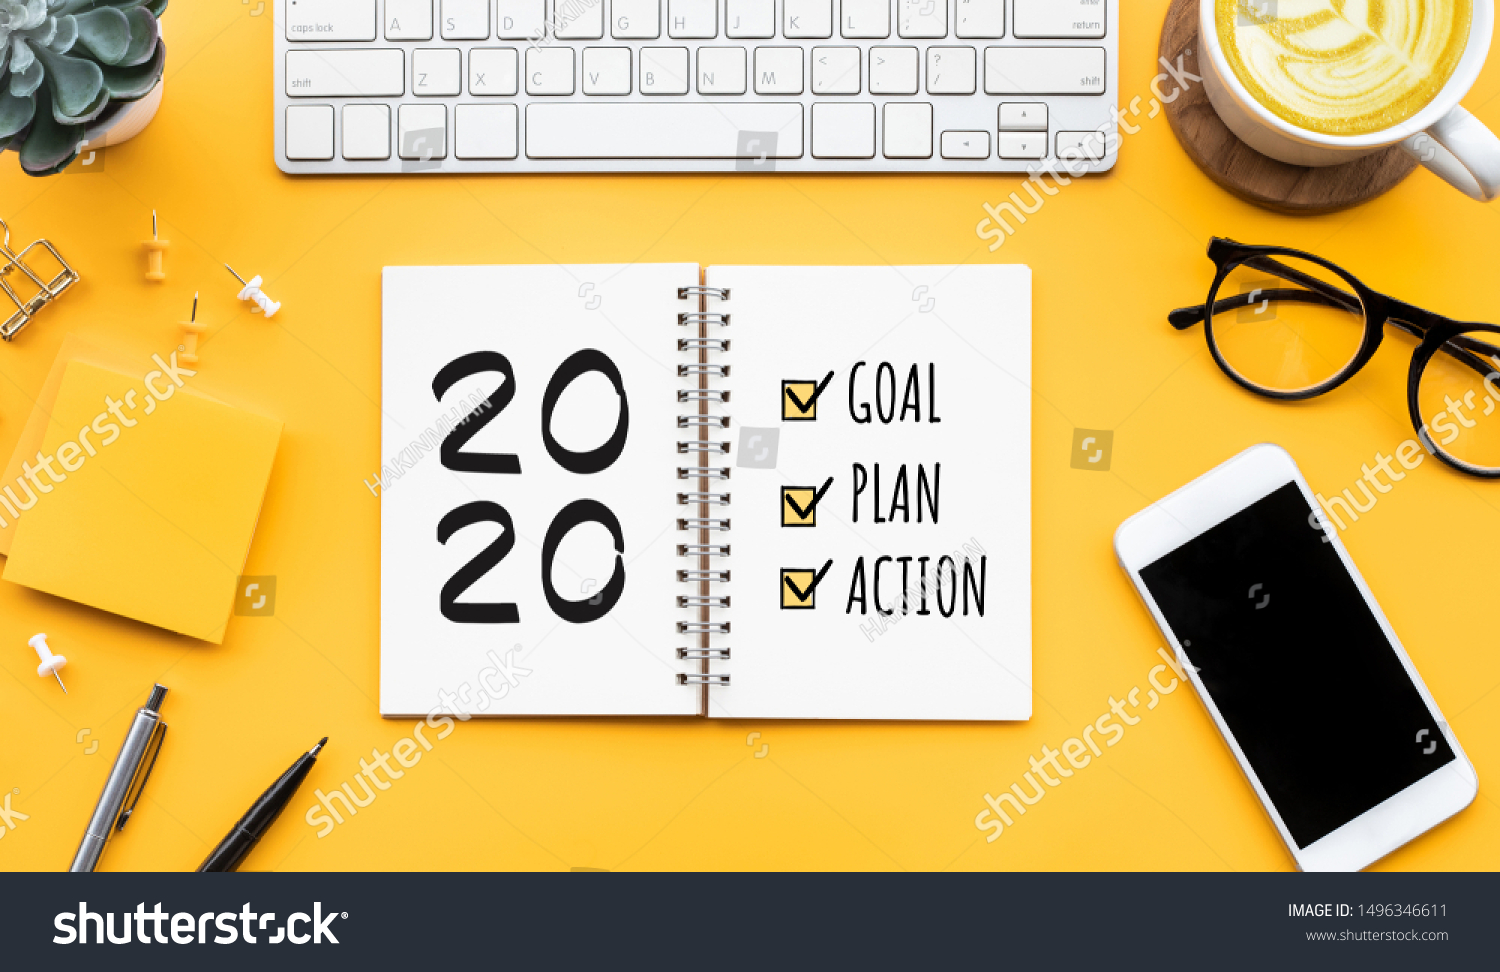 2020 new year goal,plan,action text on notepad with office accessories.Business motivation,inspiration concepts ideas #1496346611